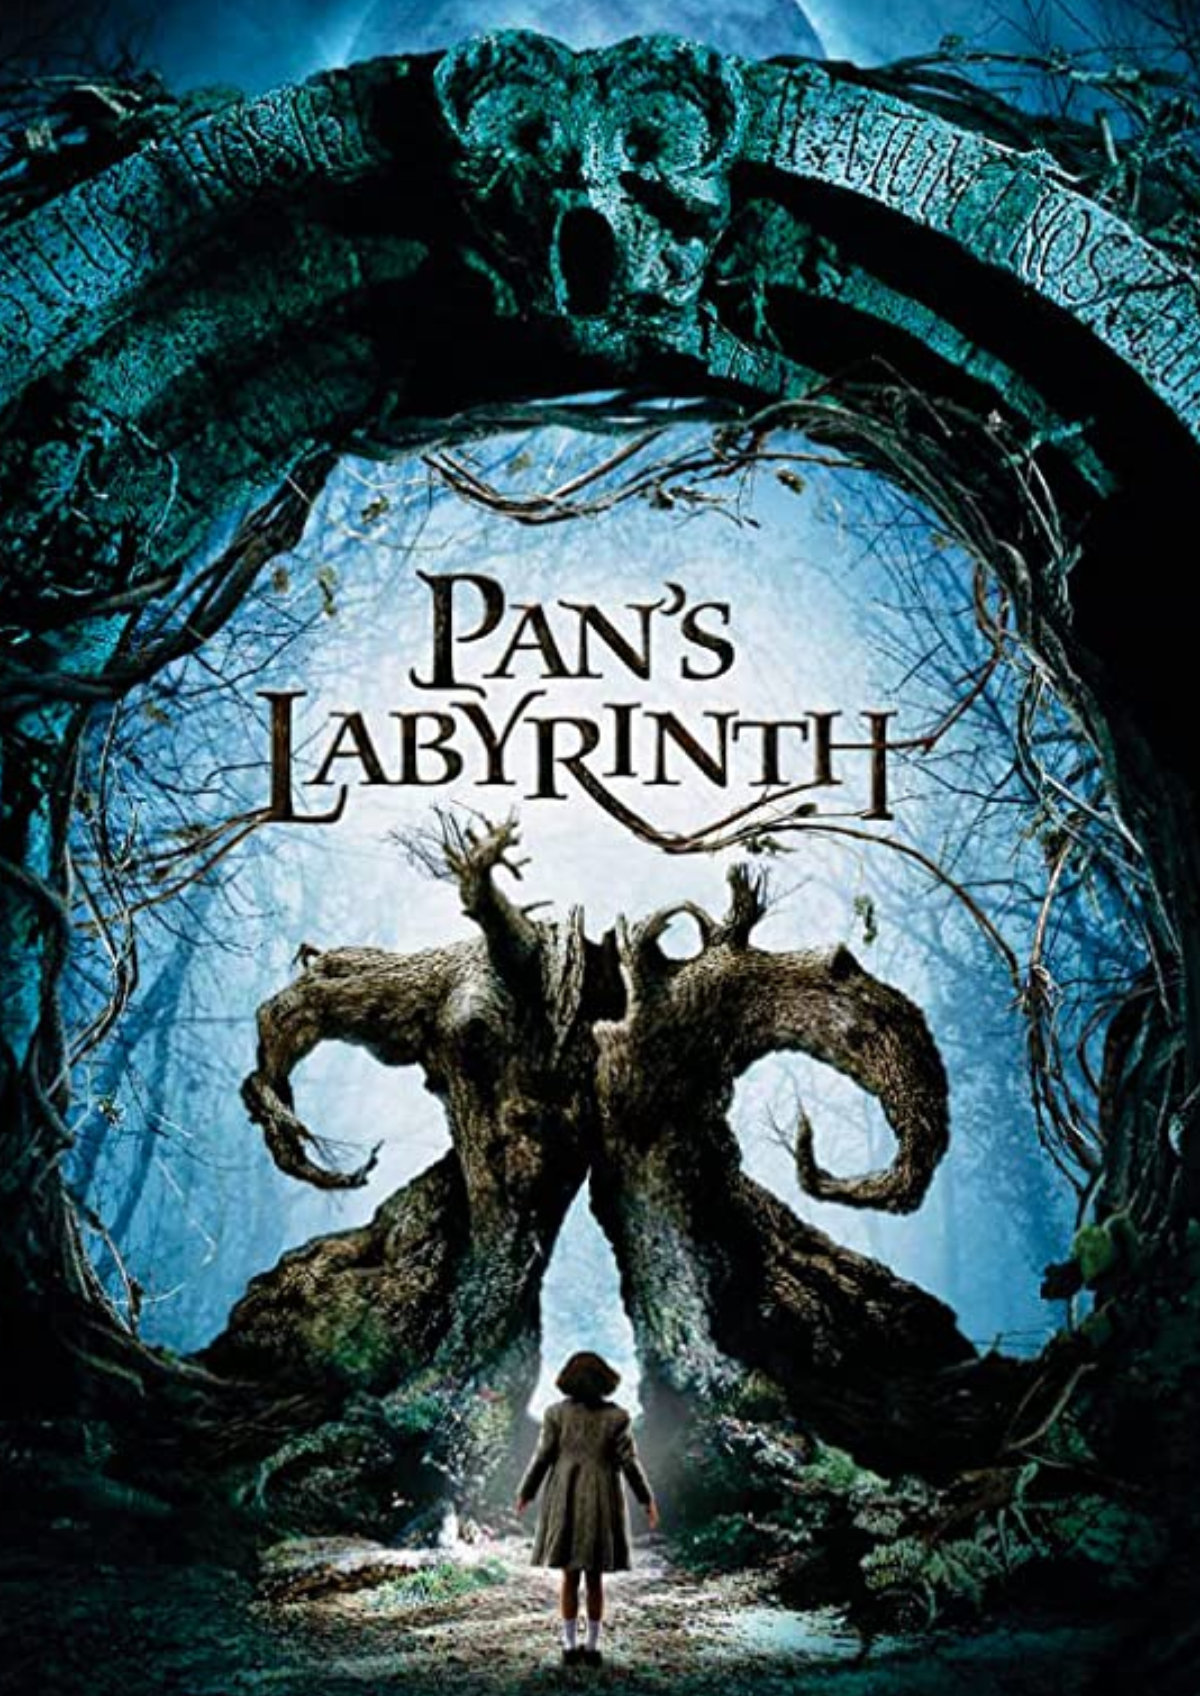 'Pan's Labyrinth' movie poster